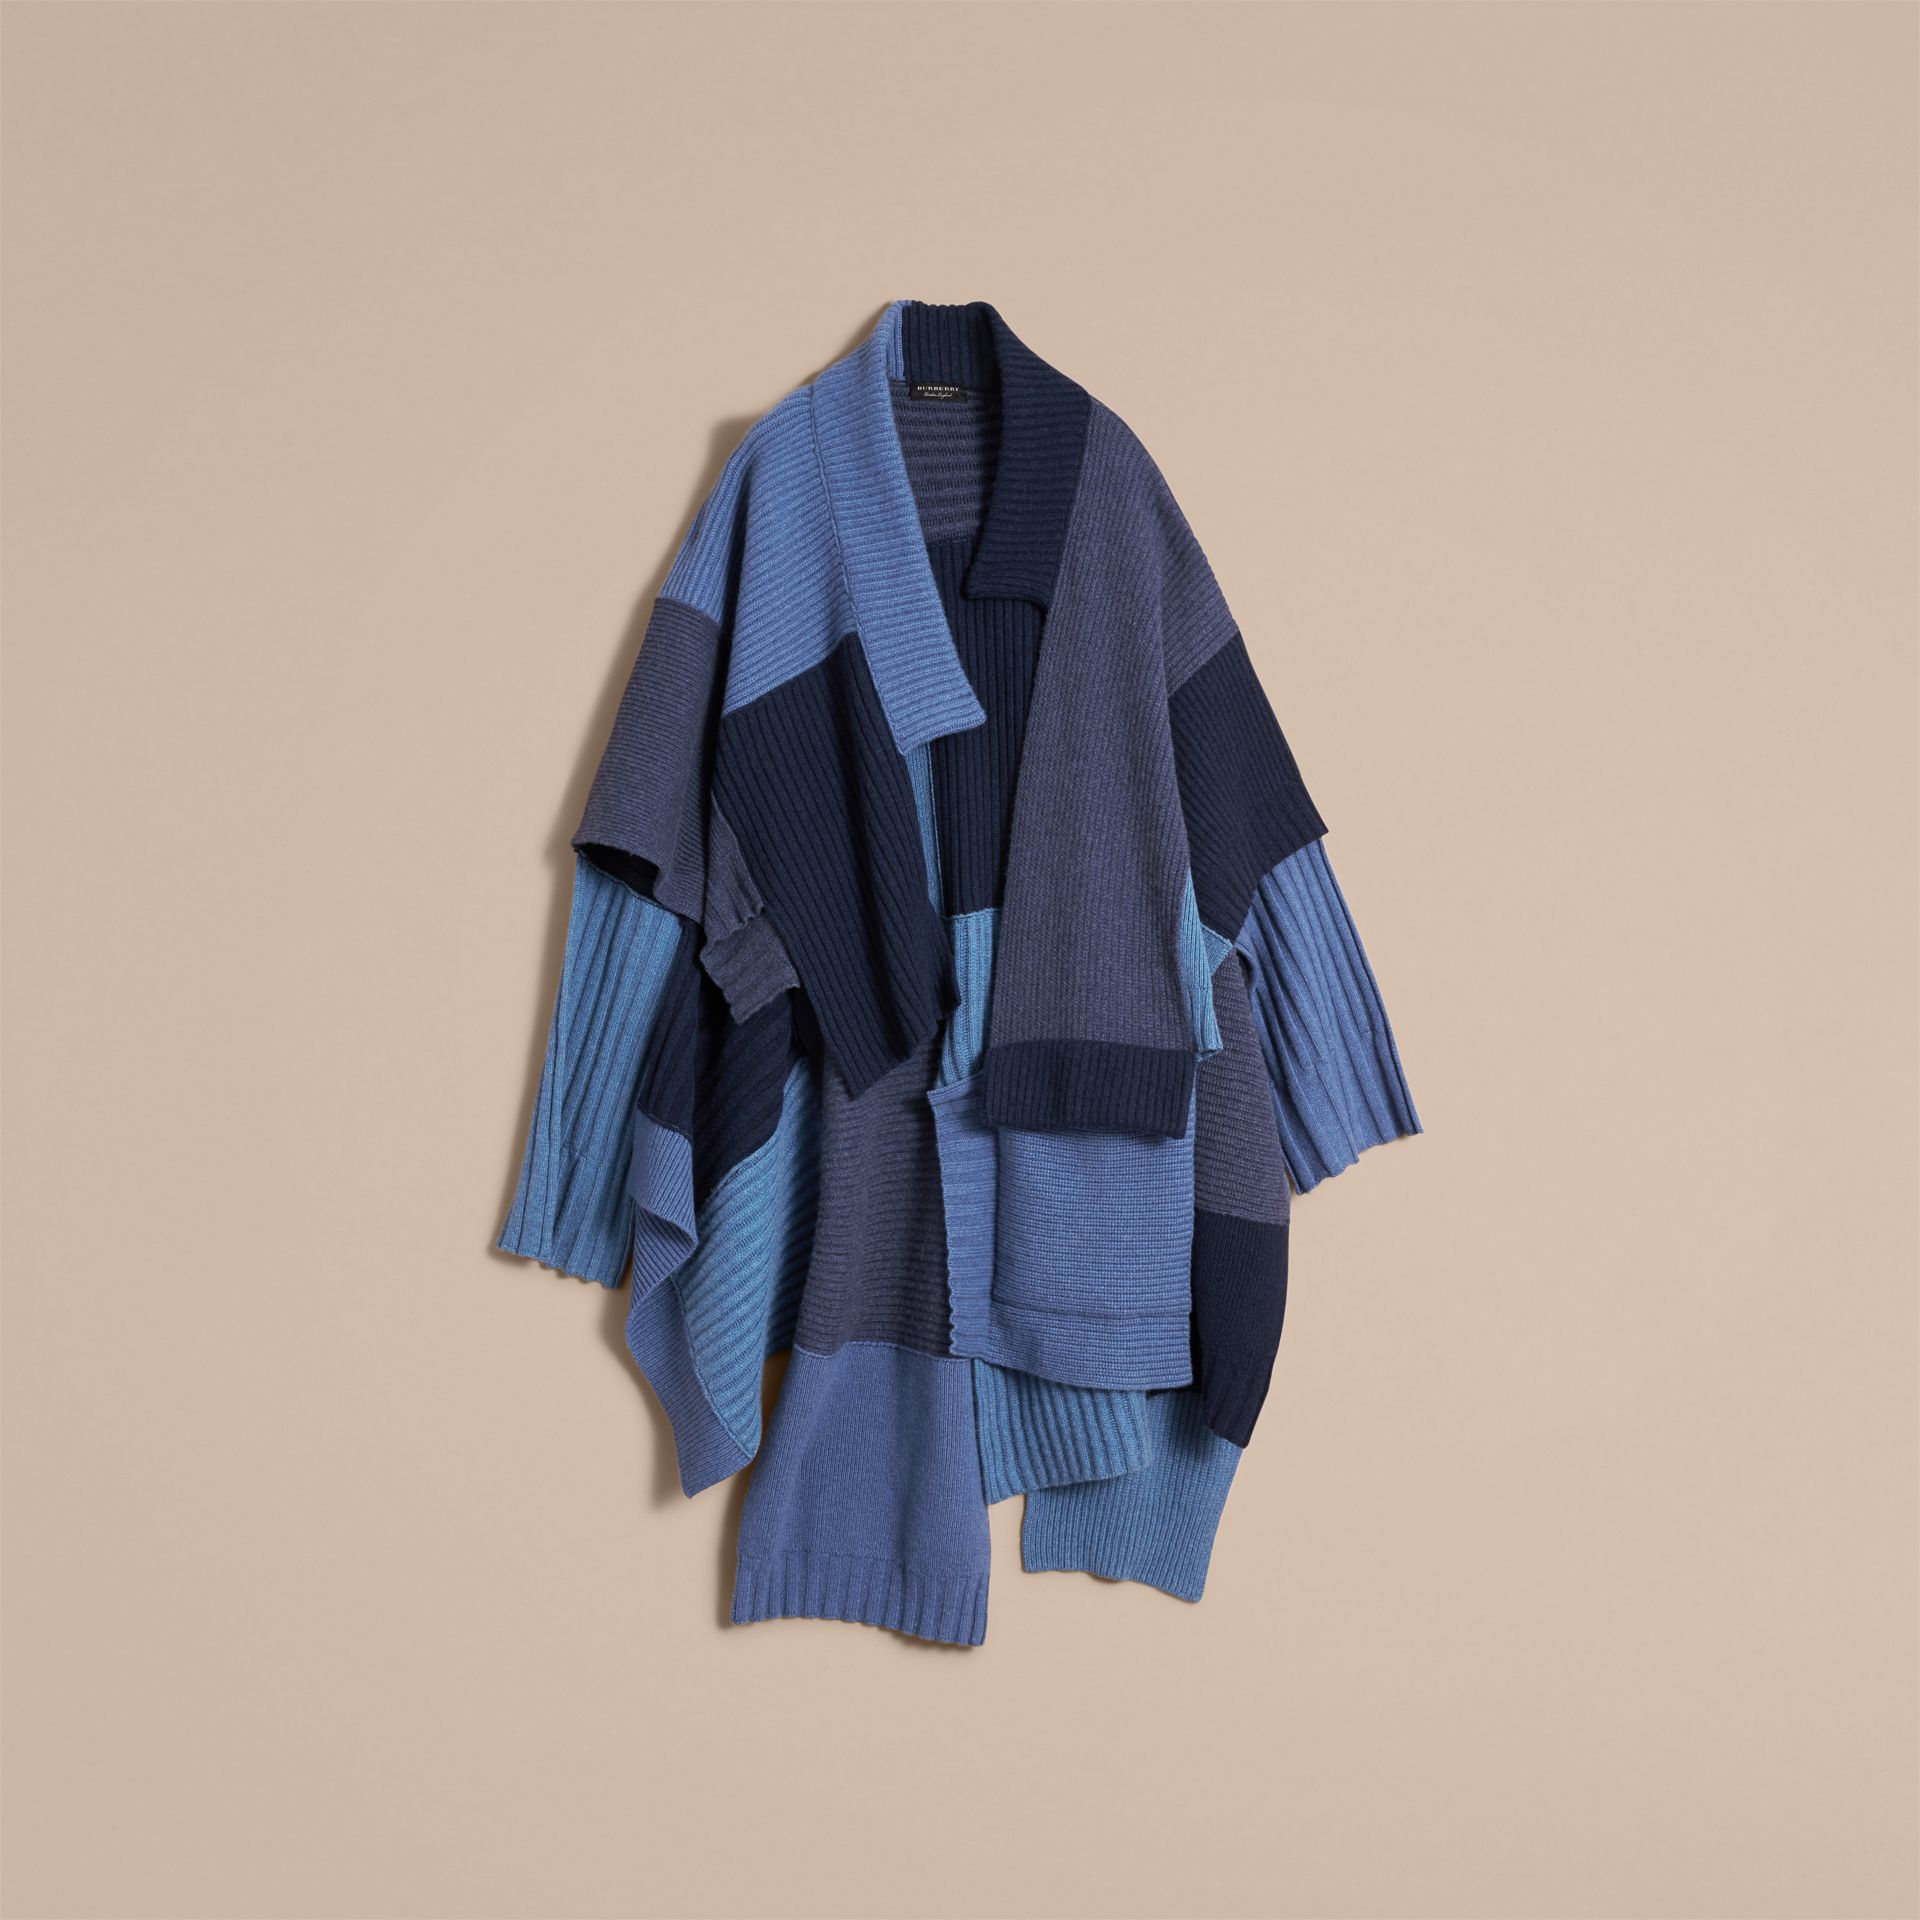 Wool Cashmere Patchwork Poncho in Carbon Blue - Women | Burberry Singapore - gallery image 4